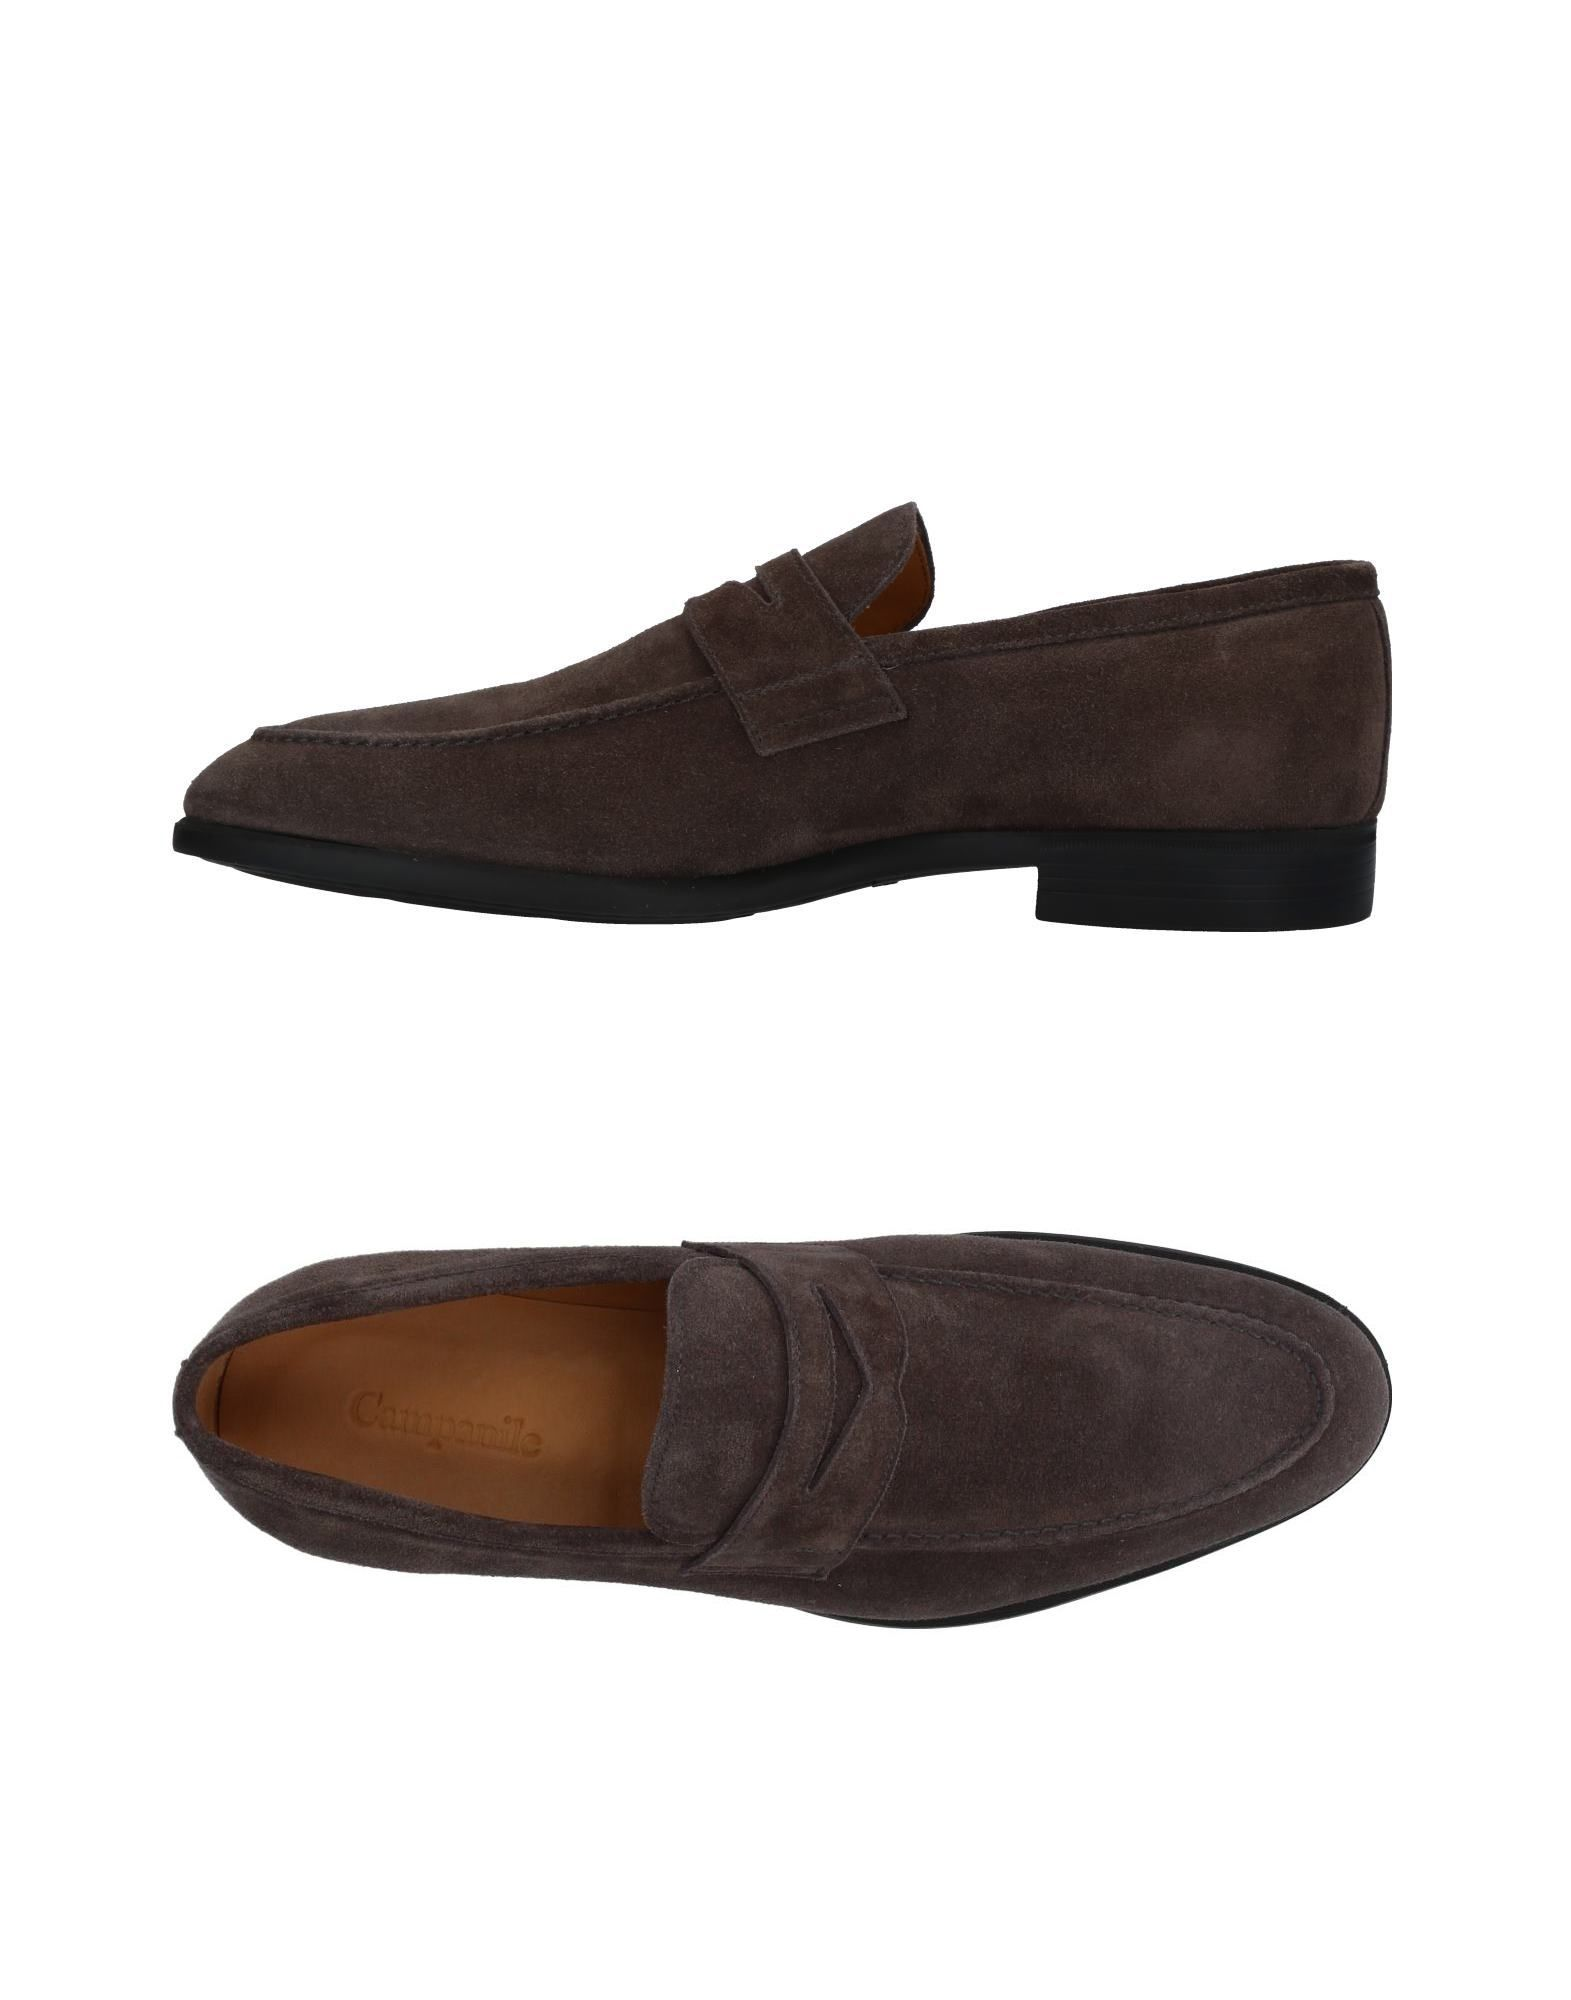 CAMPANILE Loafers in Lead